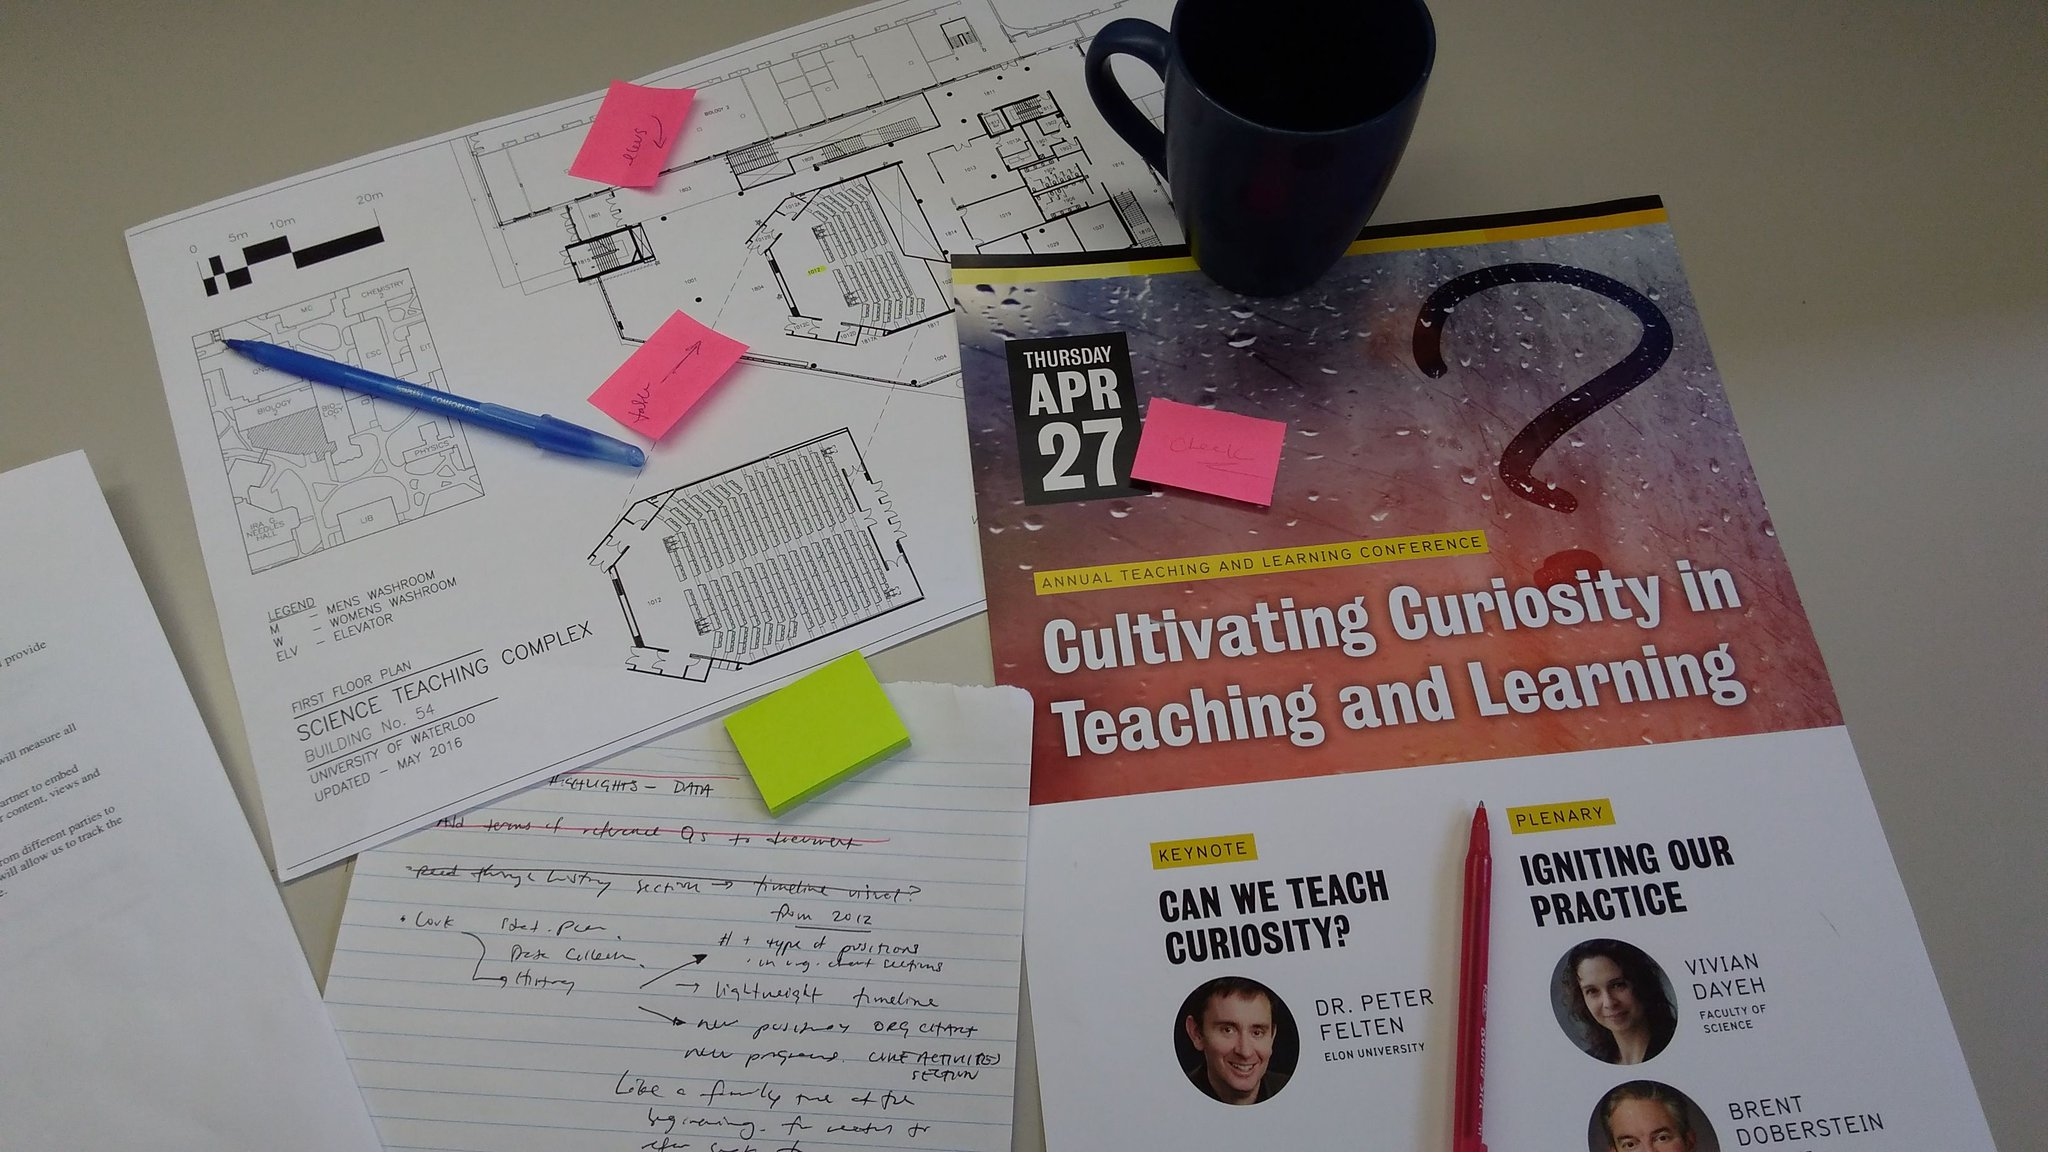 We're in serious planning mode--our ninth annual Teaching and Learning Conference is just one week away! #UWTL17 https://t.co/meEvxHiIl4 https://t.co/7CSX8RlJly